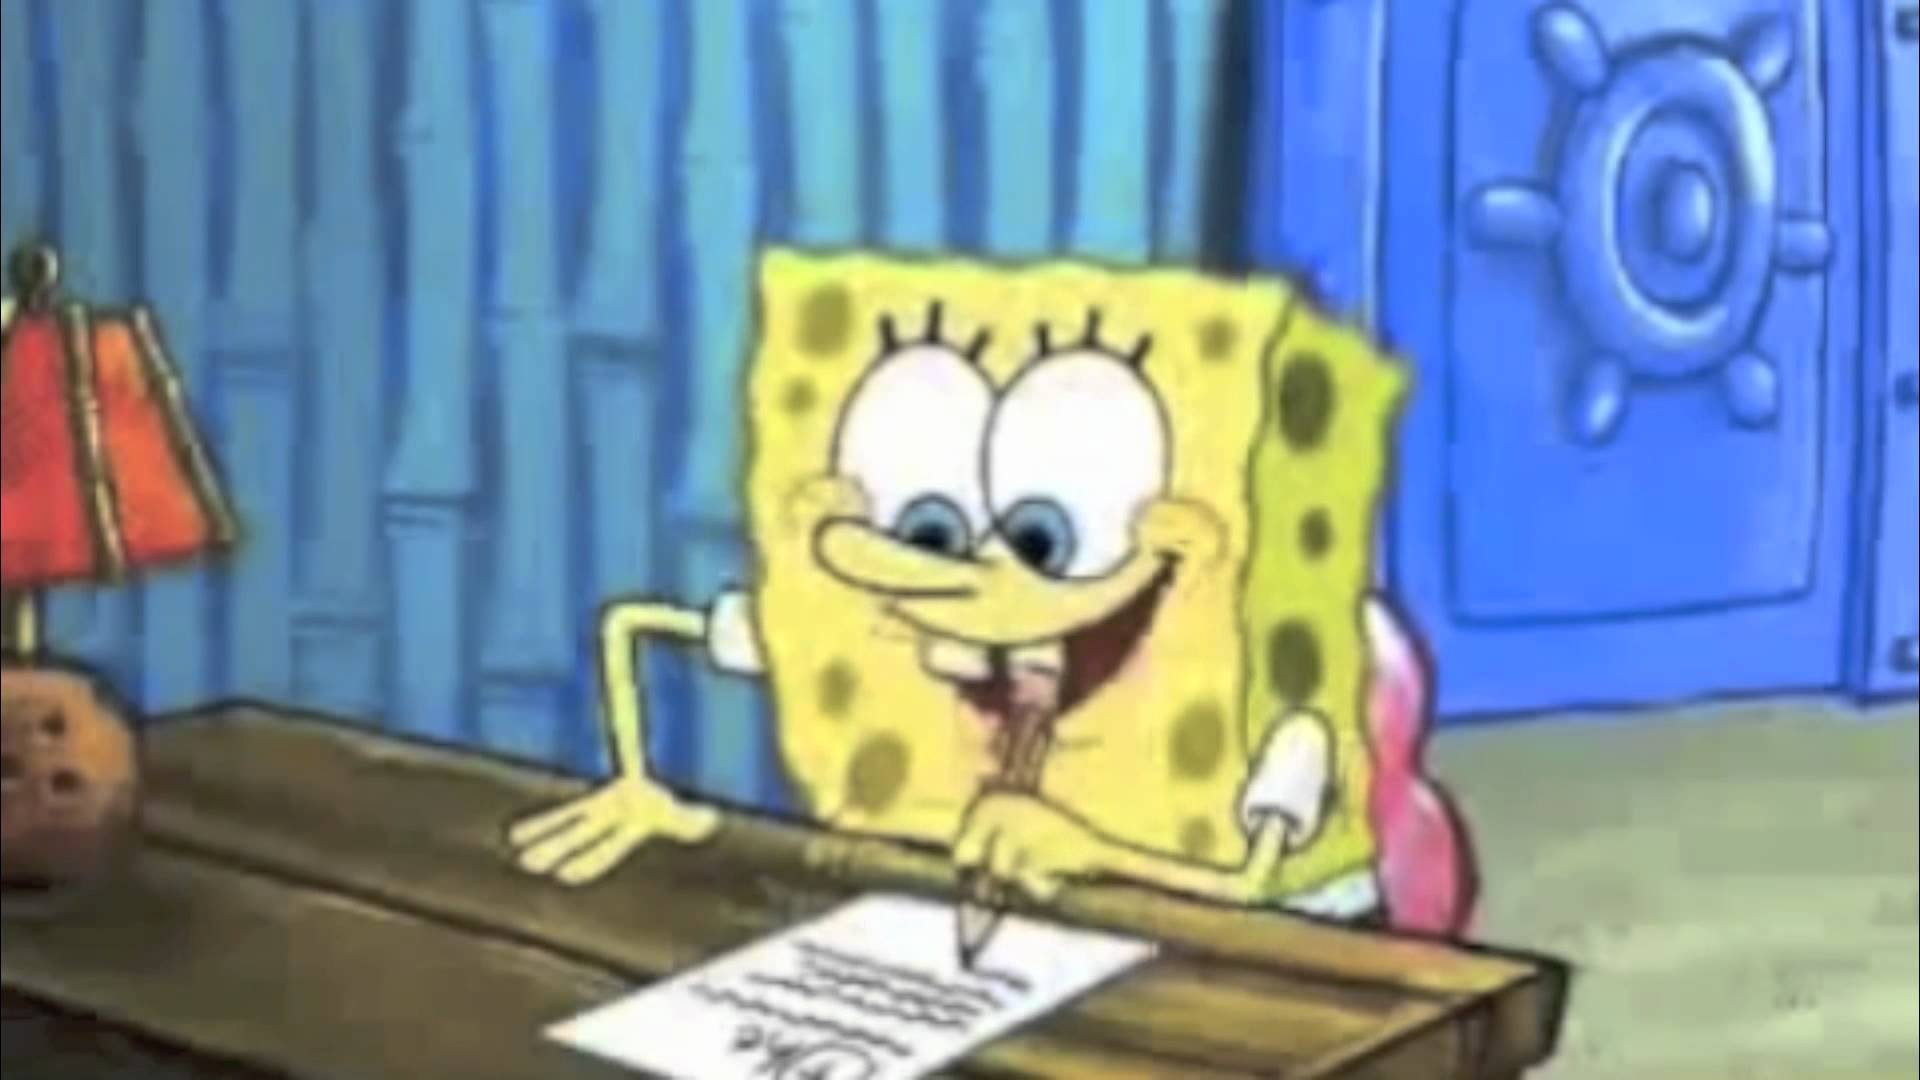 013 Essay Example Spongebob Writing His Help For Hours Maxresde Gif The Rap Font Surprising Pencil Quote Full Episode Scene Full